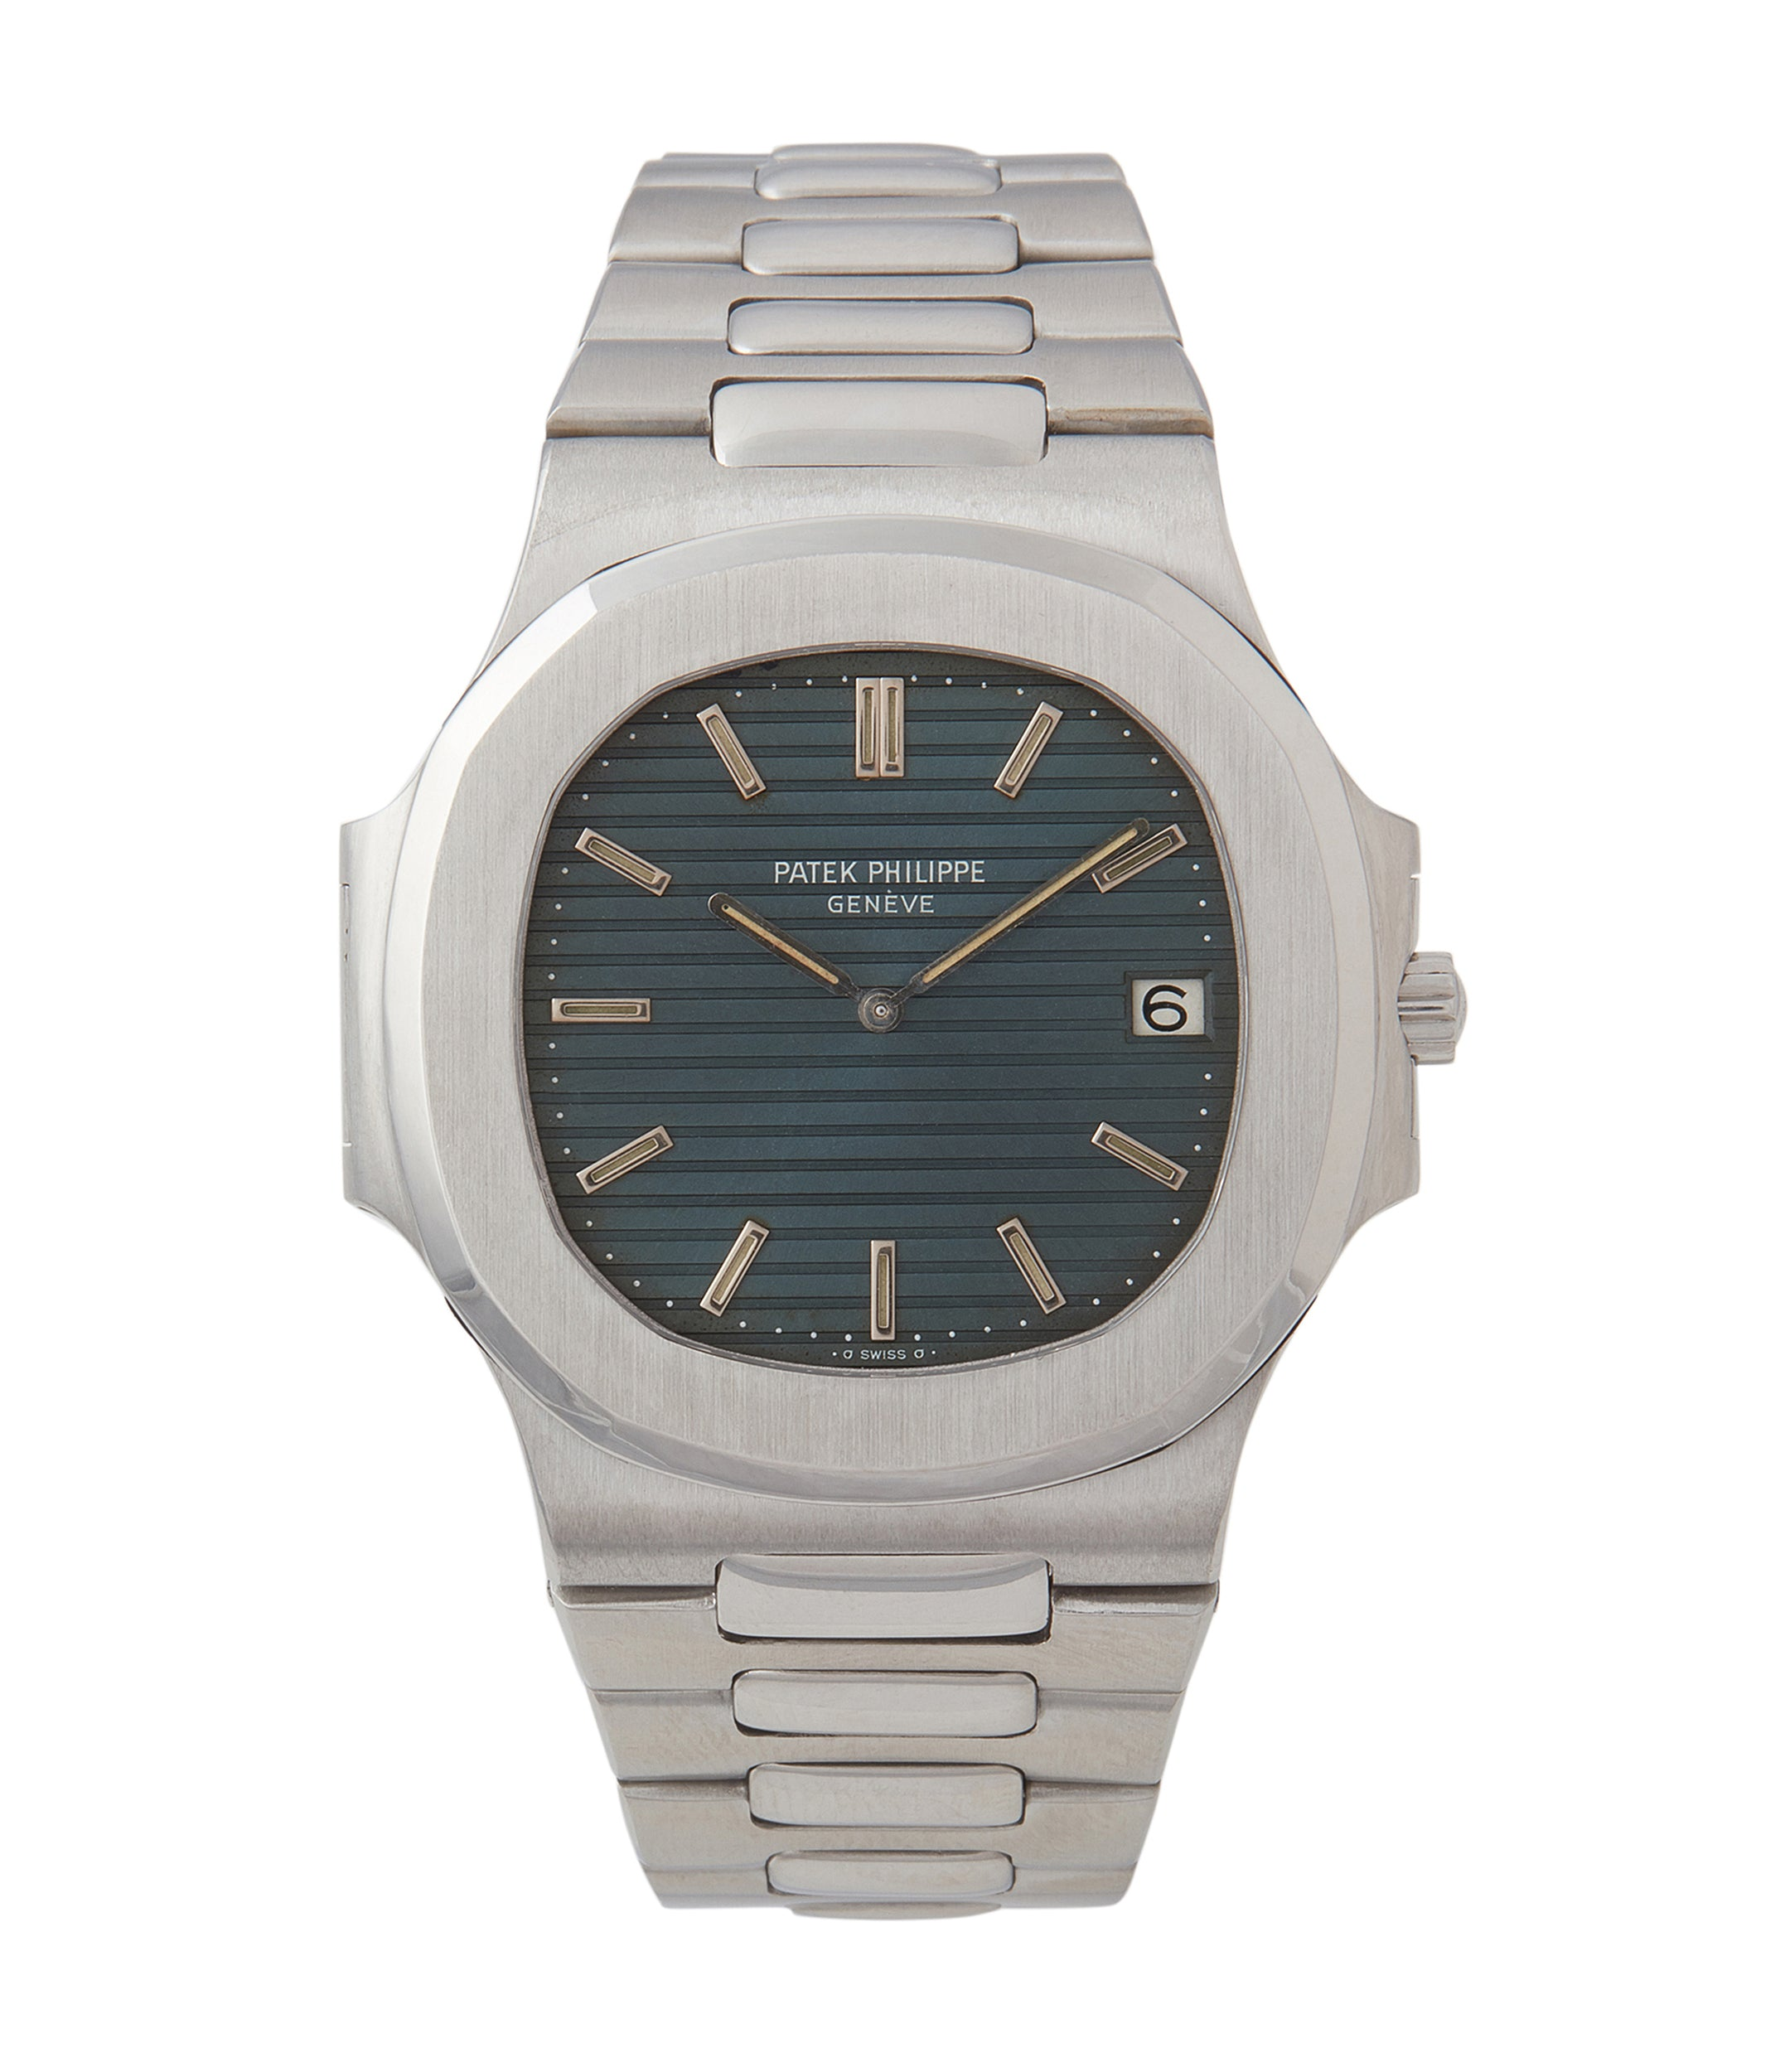 buy Patek Philippe Nautilus 3700/001 full set vintage watch for sale online at A Collected Man London UK specialist of rare watches